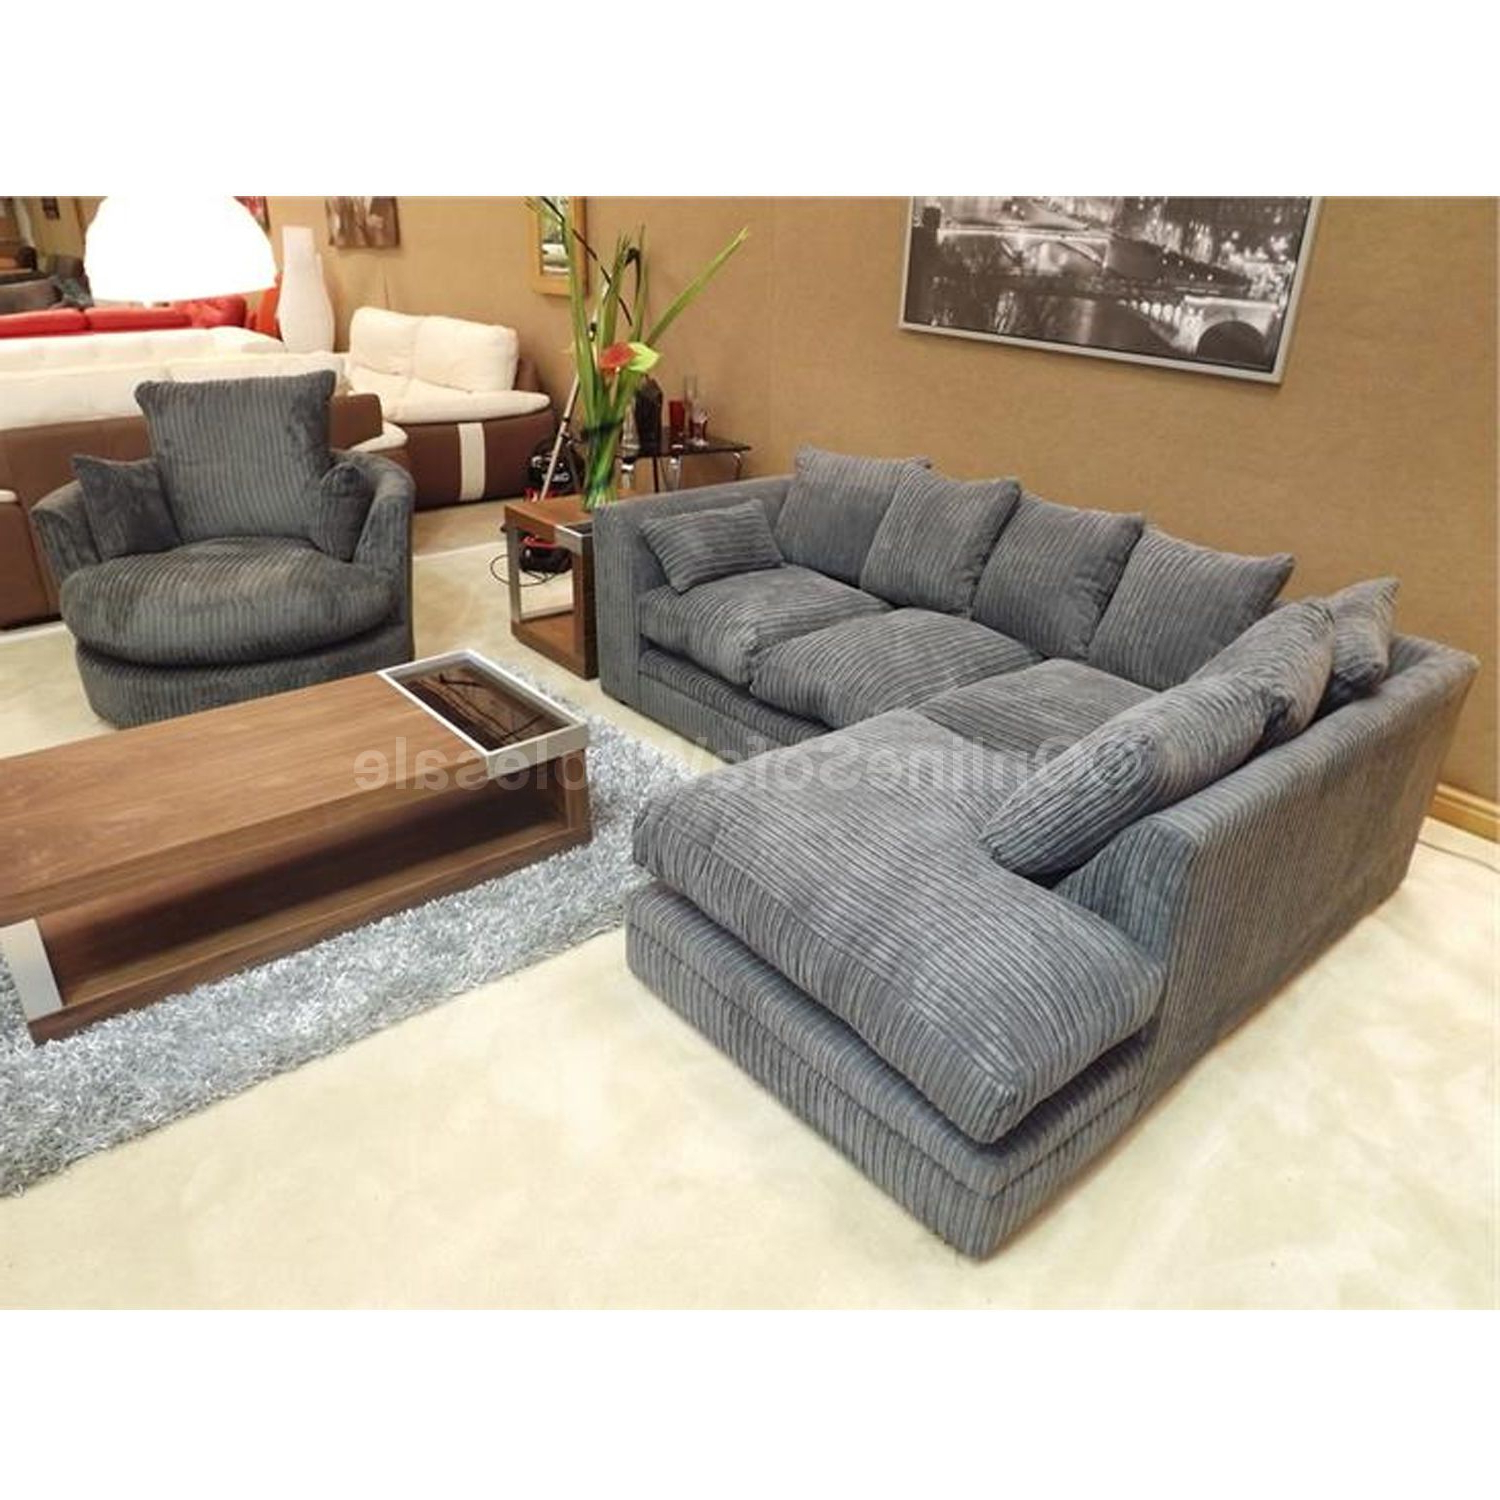 2019 Dark Grey Swivel Chairs Intended For Details About Dylan Corner Sofa Left Hand Plus Swivel Chair – All (View 15 of 20)